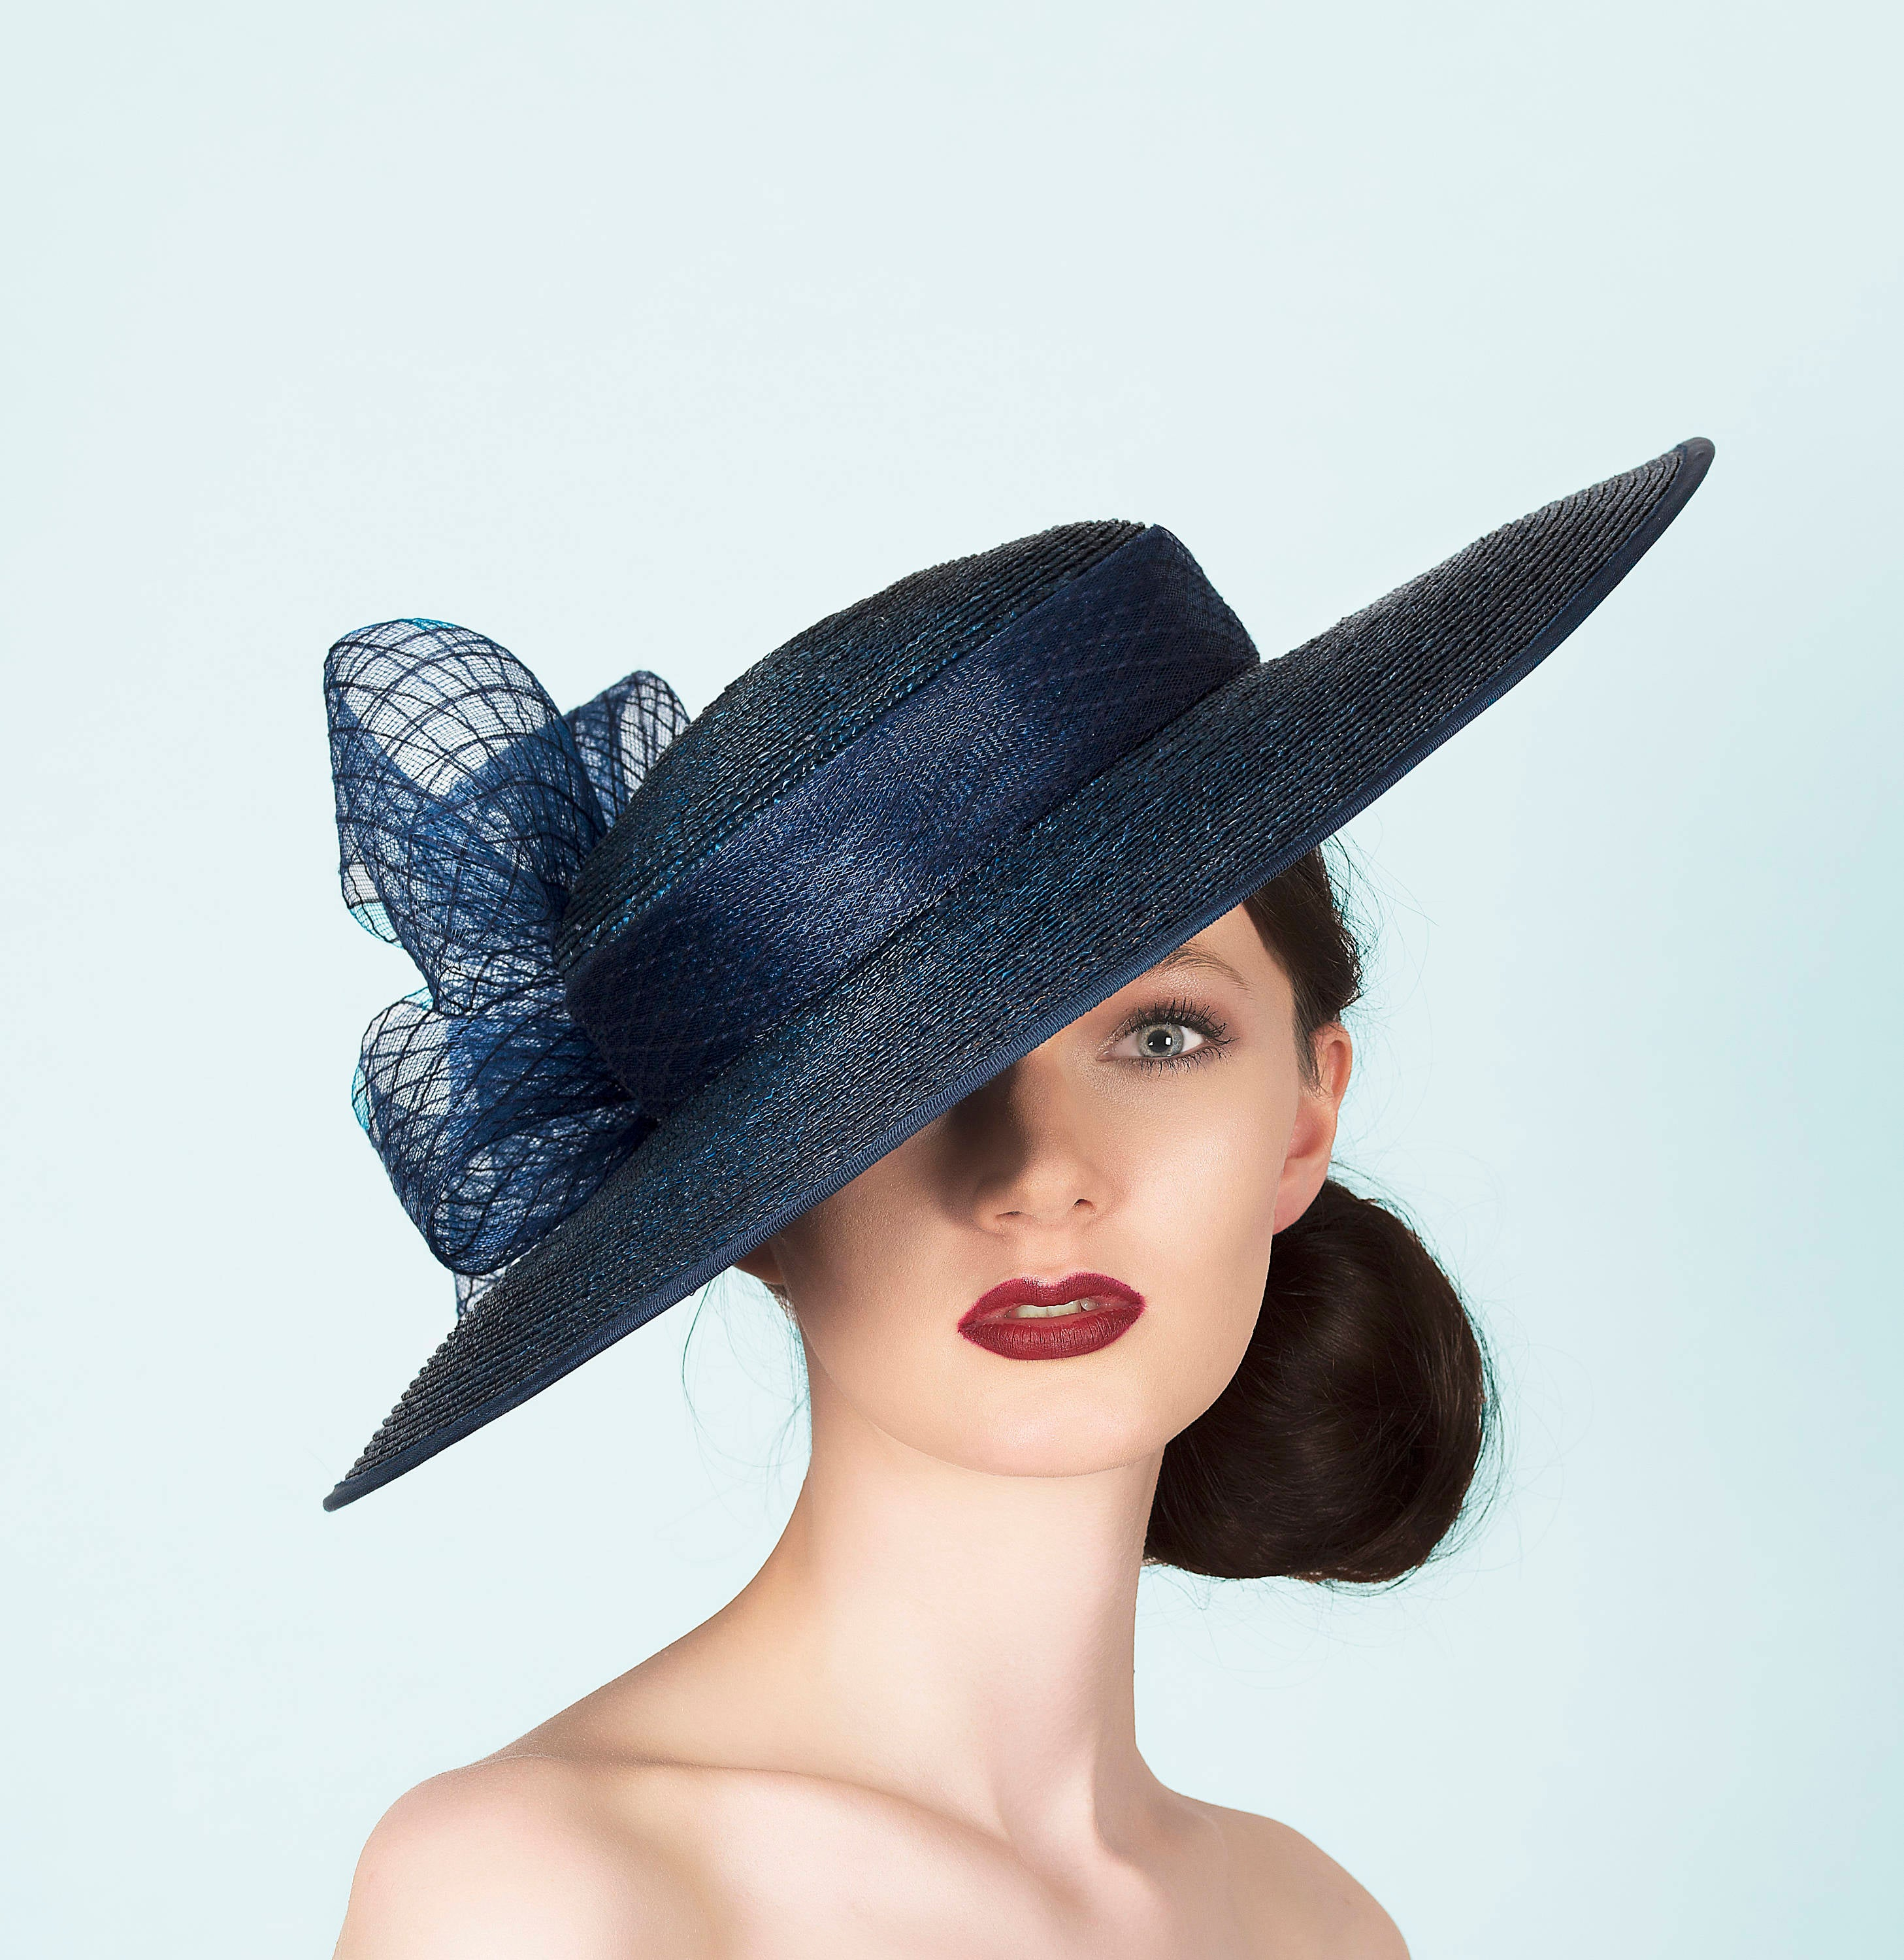 navy blue wide brimmed straw boater hat for wedding guest royal ascot